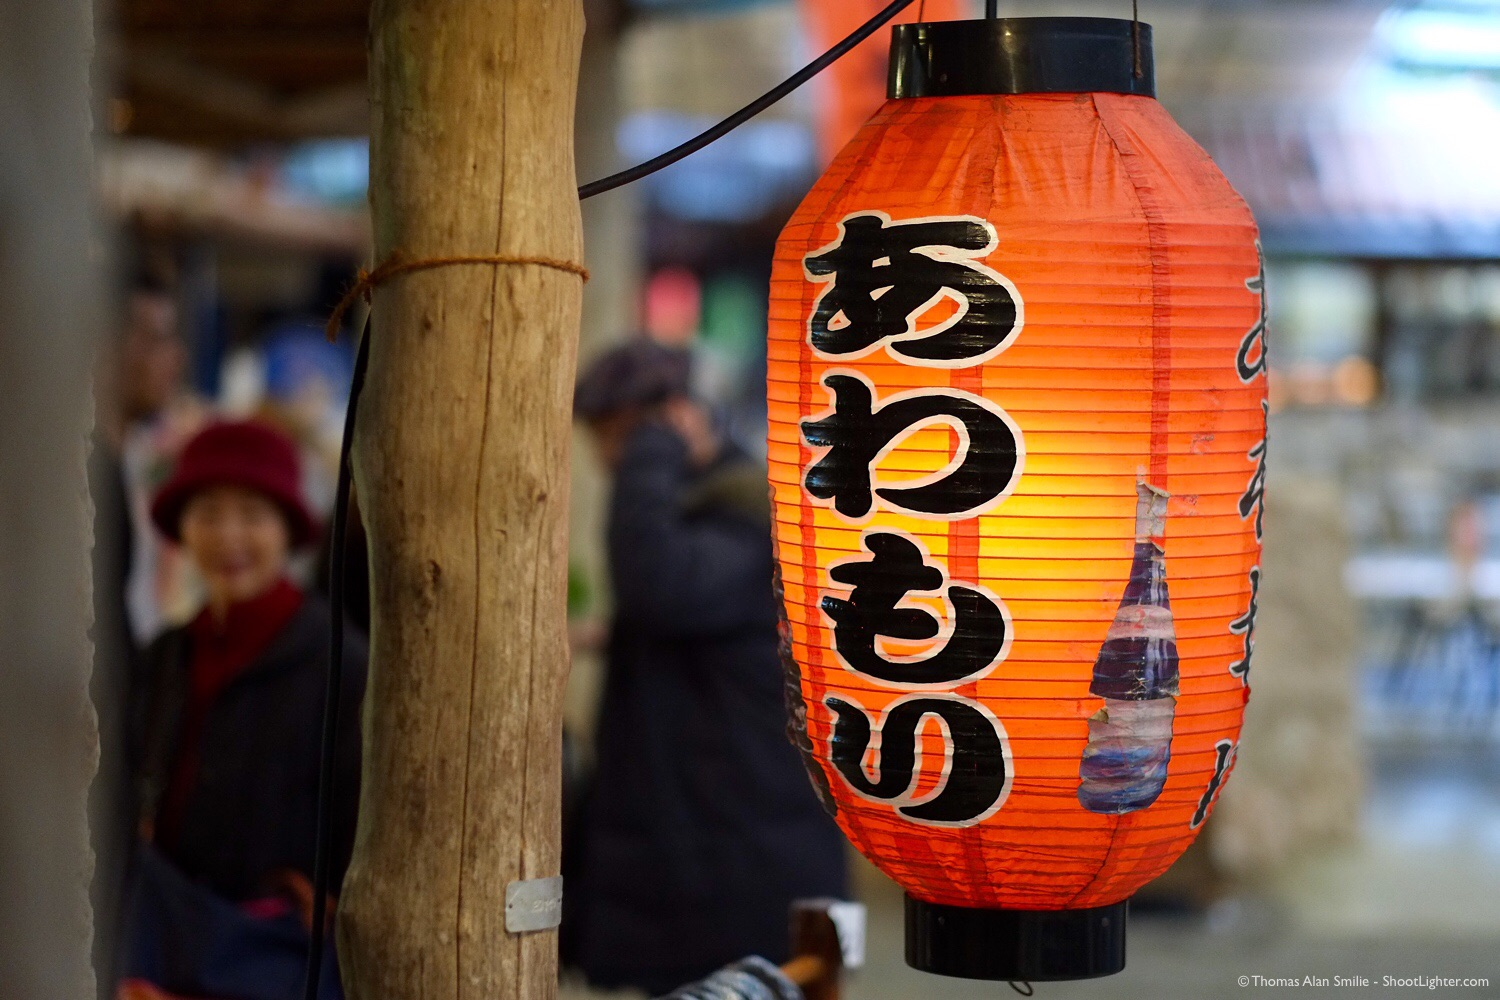 Lantern in Okinawa, Japan. Taken with a Fuji X-Pro1, 56mm f/1.2 lens @ 1/500 sec, f/1.2, ISO 1600